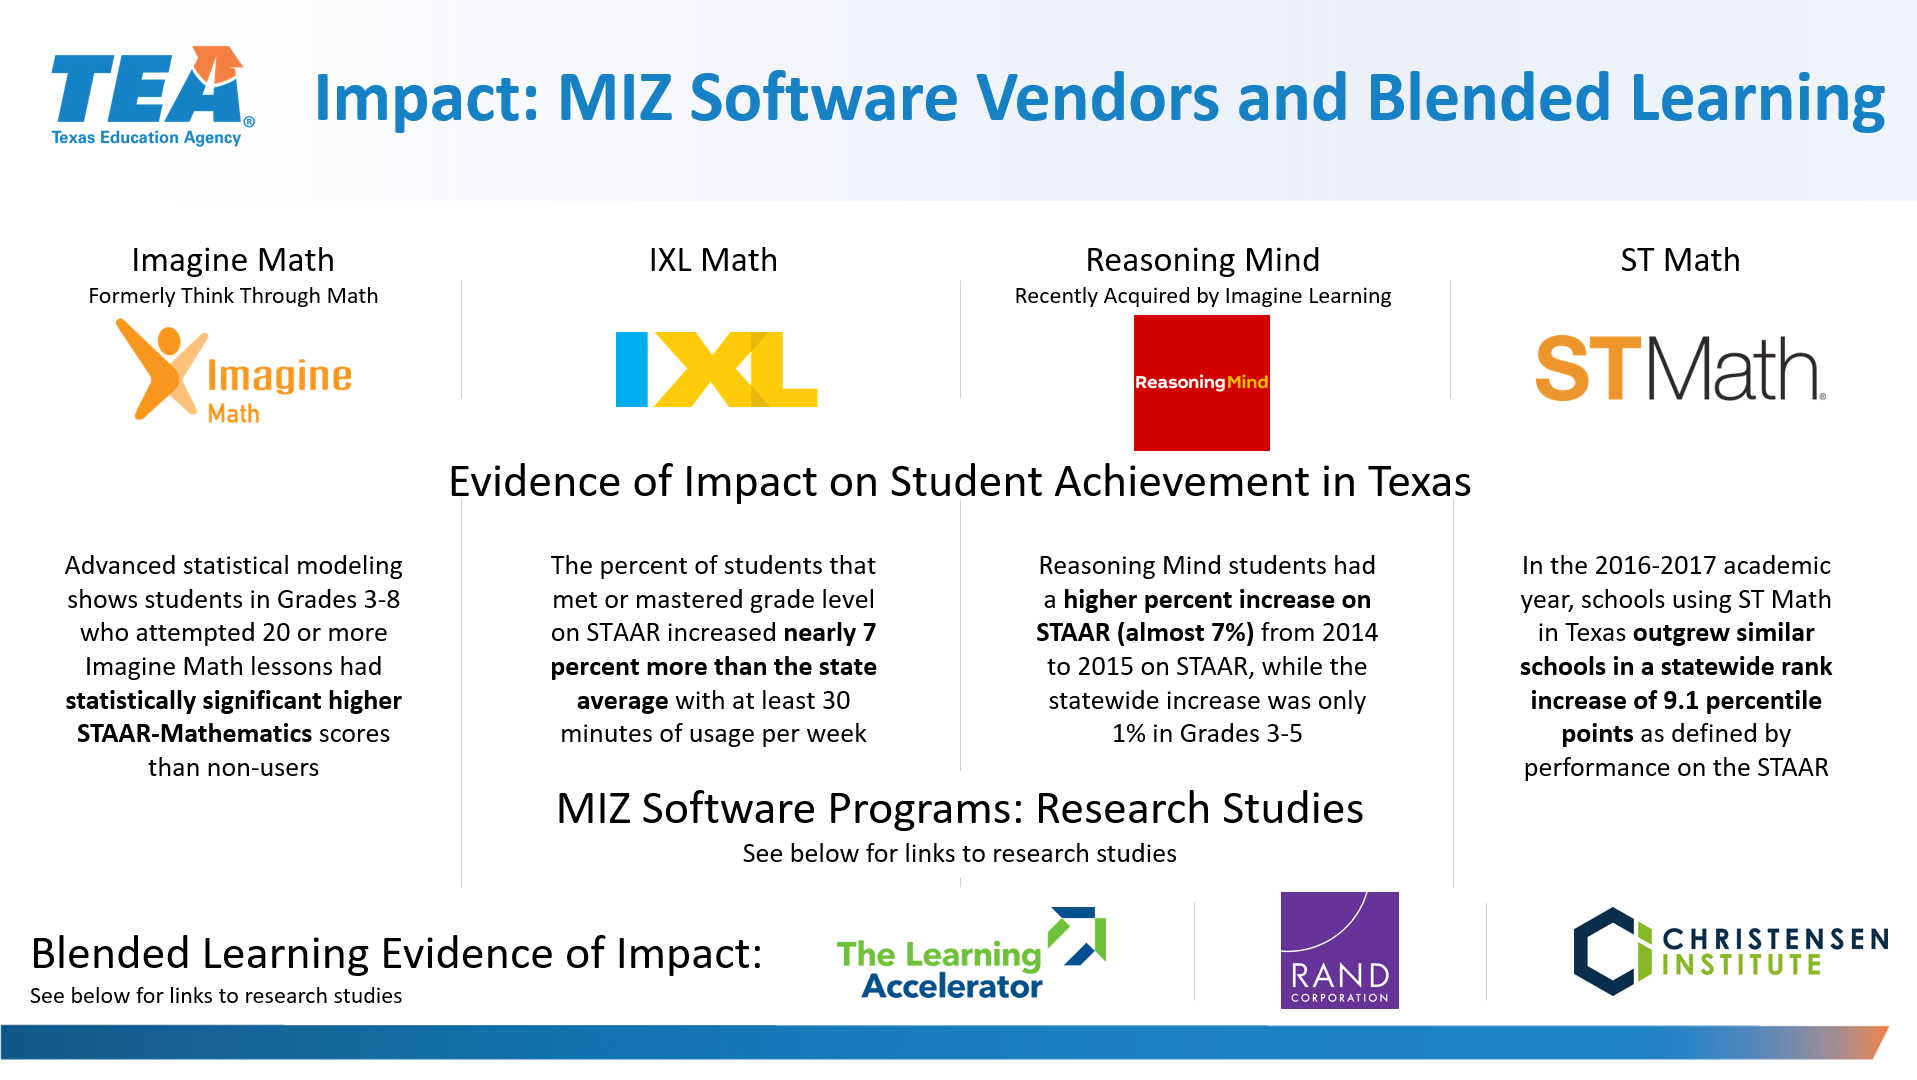 Impact-software vendors image